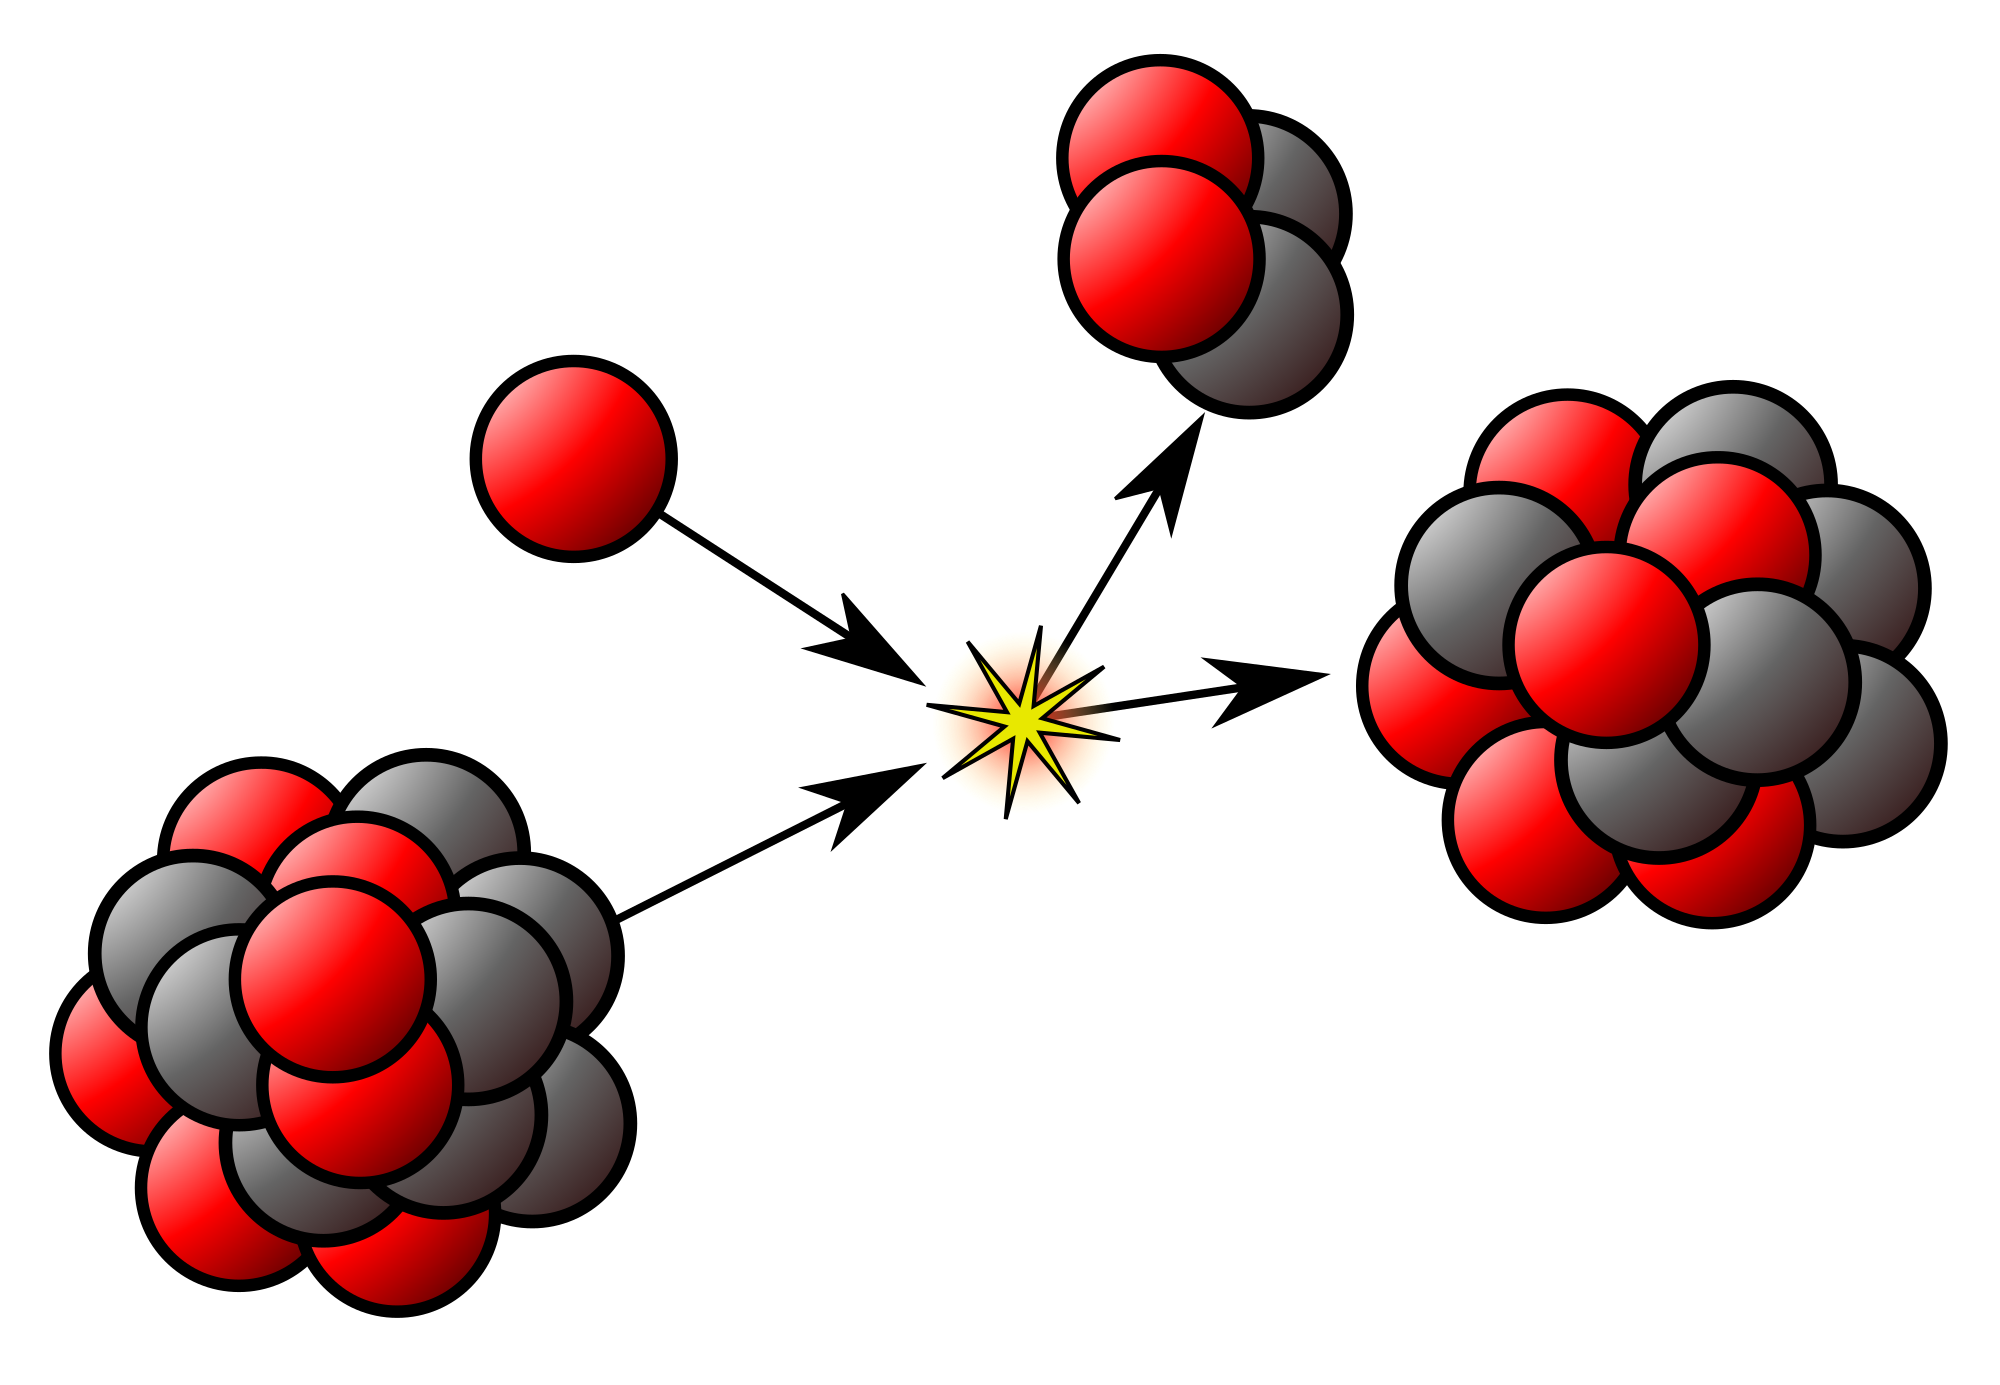 Energy clipart atom. Fission and fusion reaction